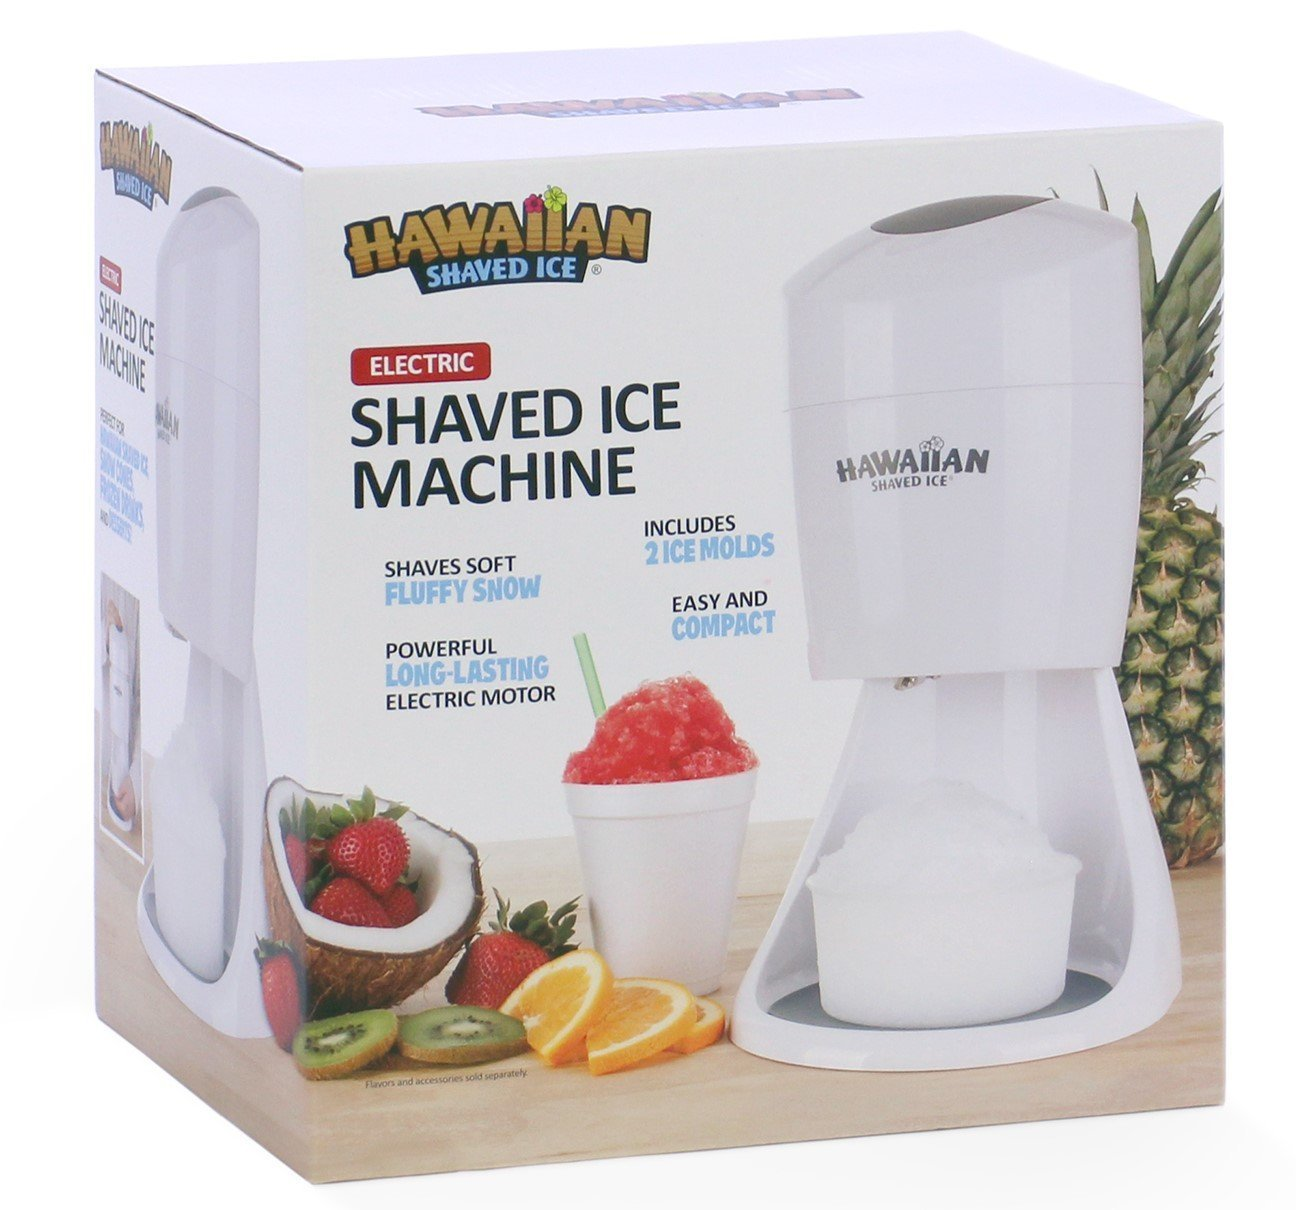 Hawaiian Shaved Ice S900A Shaved Ice and Snow Cone Machine, White by Hawaiian Shaved Ice